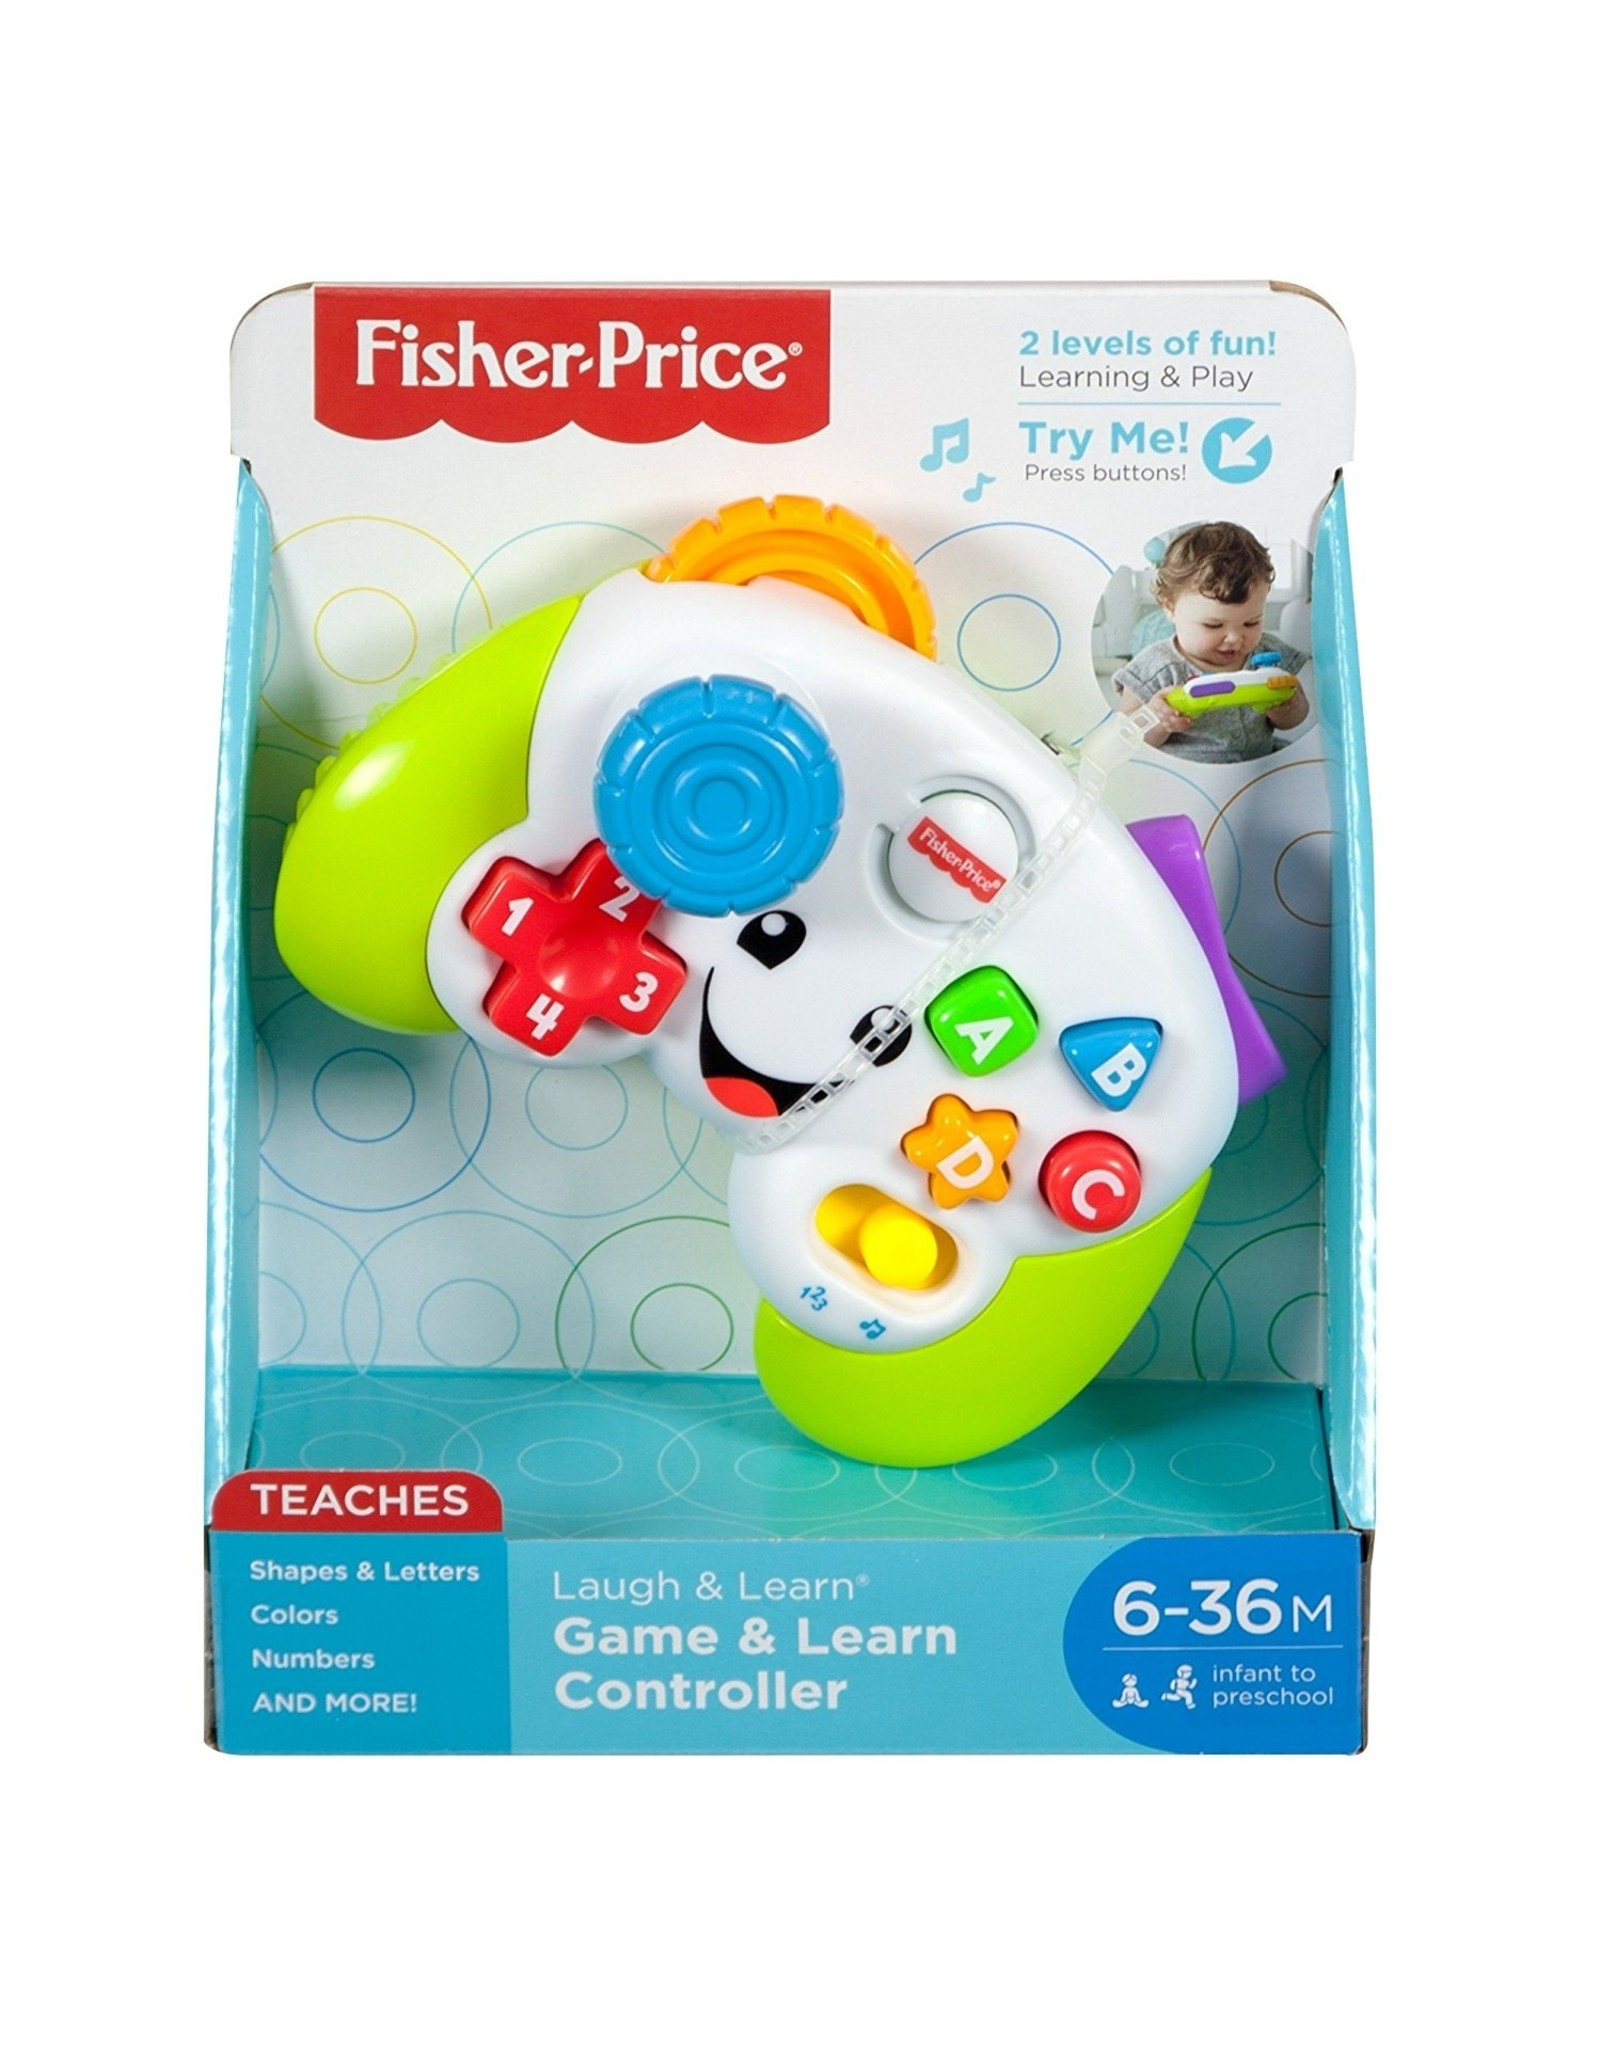 Fisher Price Fisher Price Laugh N Learn Game Controller